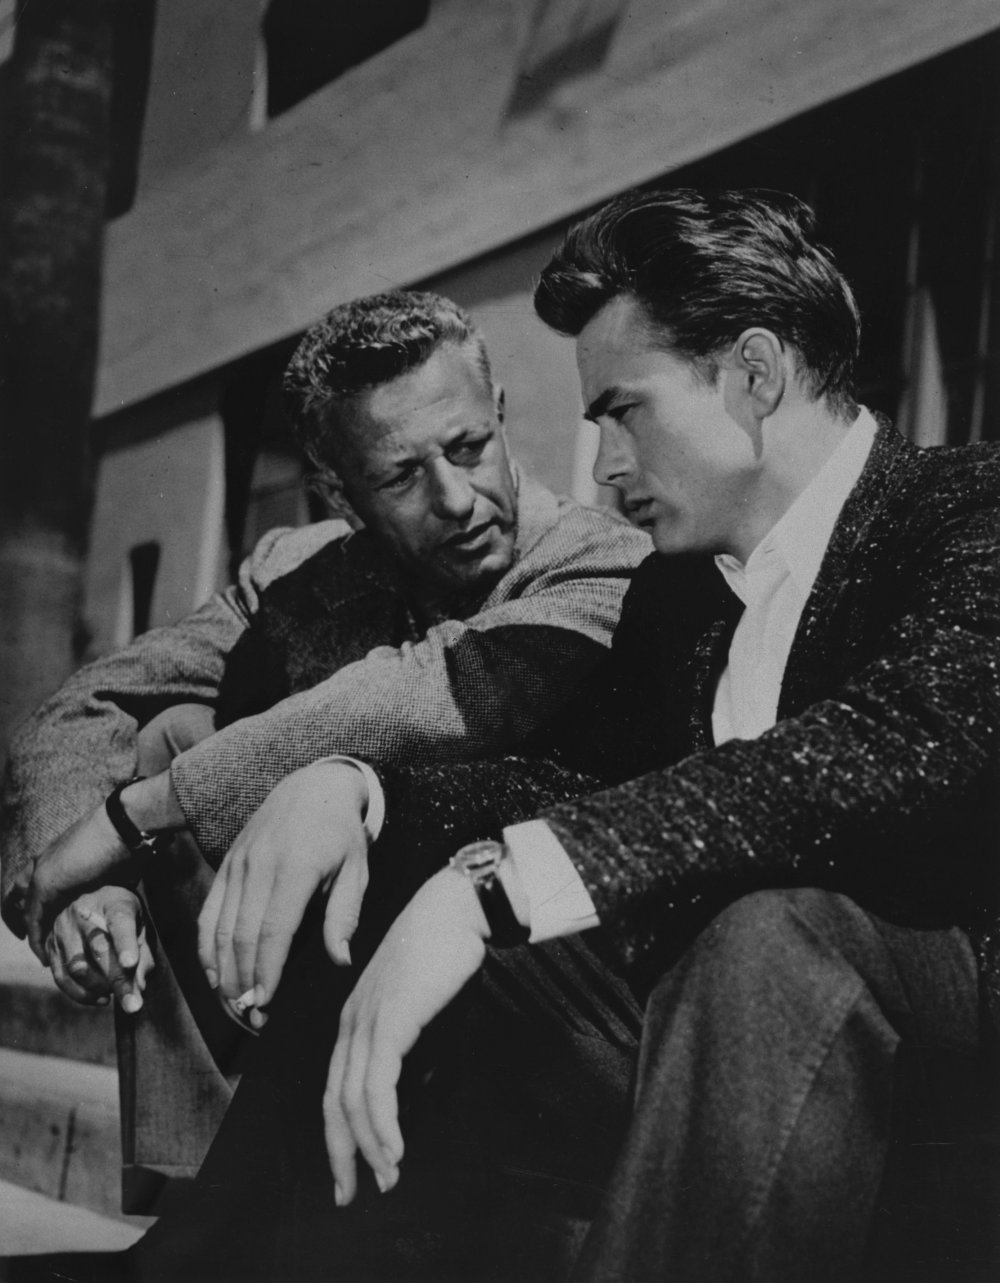 An on-location cigarette and a chat between Nicholas Ray and James Dean